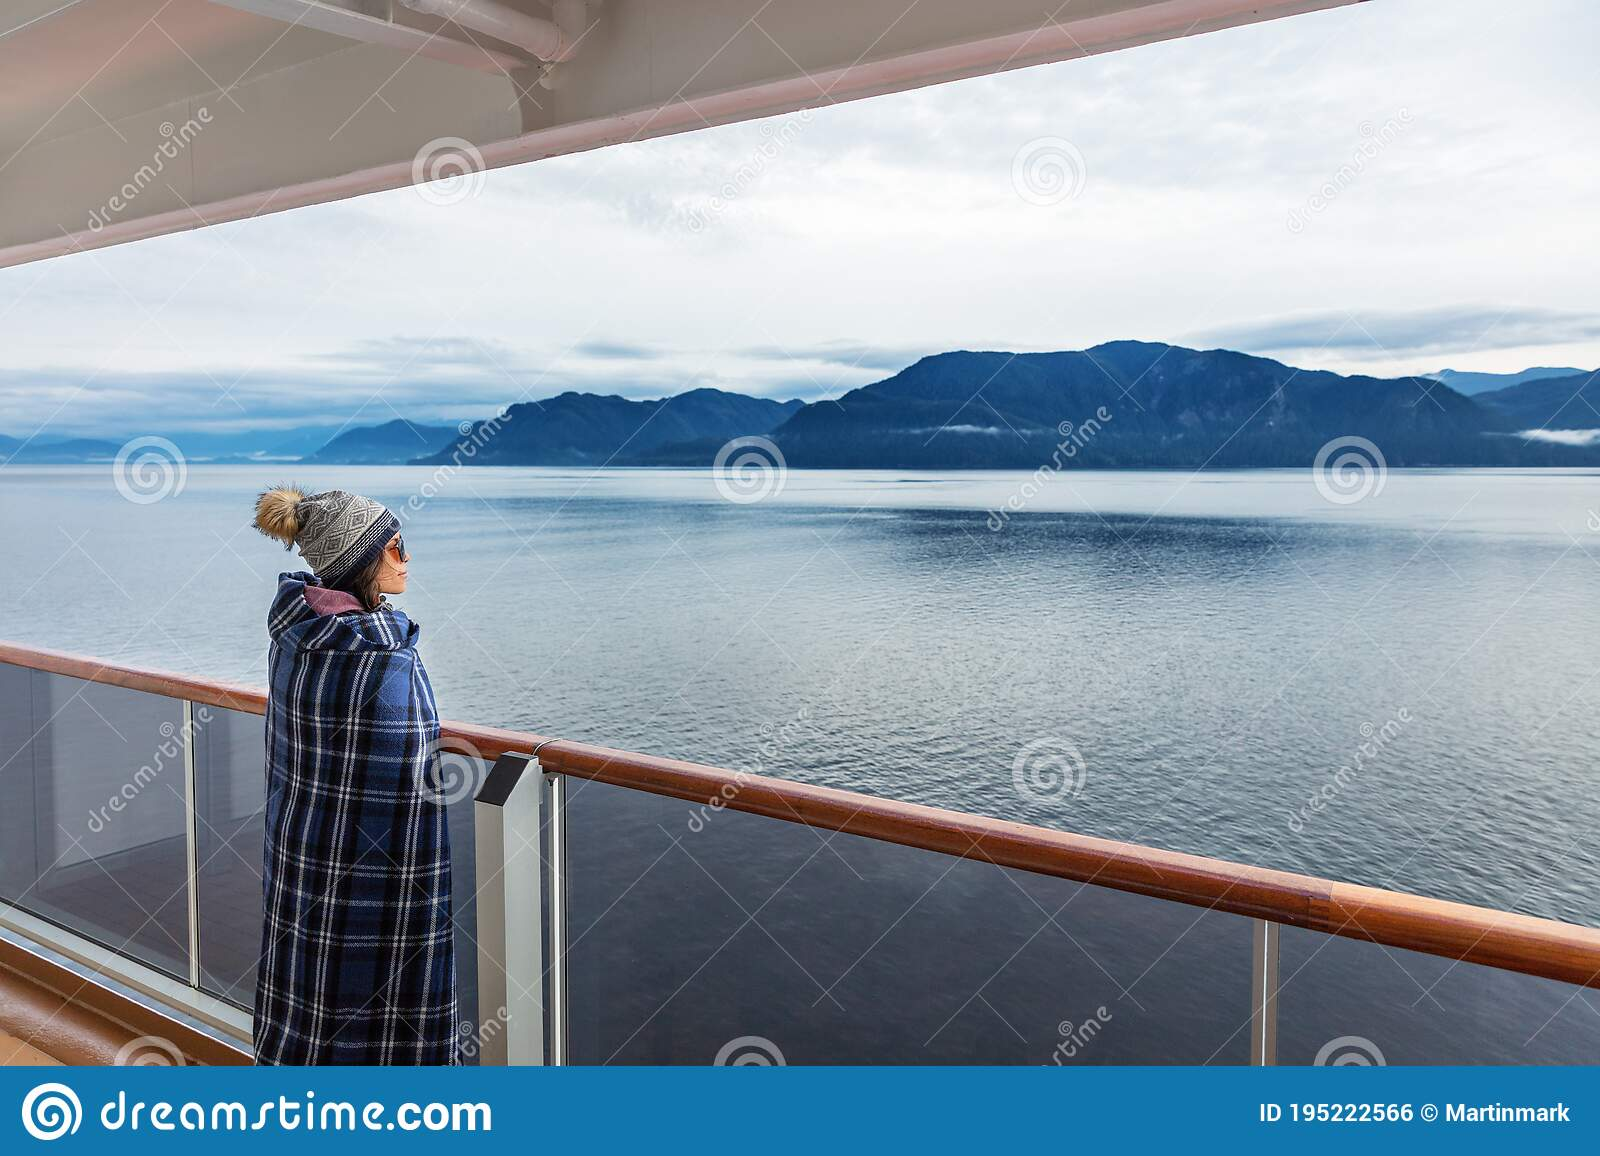 Alaska Cruise Travel Luxury Vacation Woman Watching Inside Passage Scenic Cruising Day On Balcony Deck Enjoying View Of Stock Photo Image Of Holidays Ocean 195222566